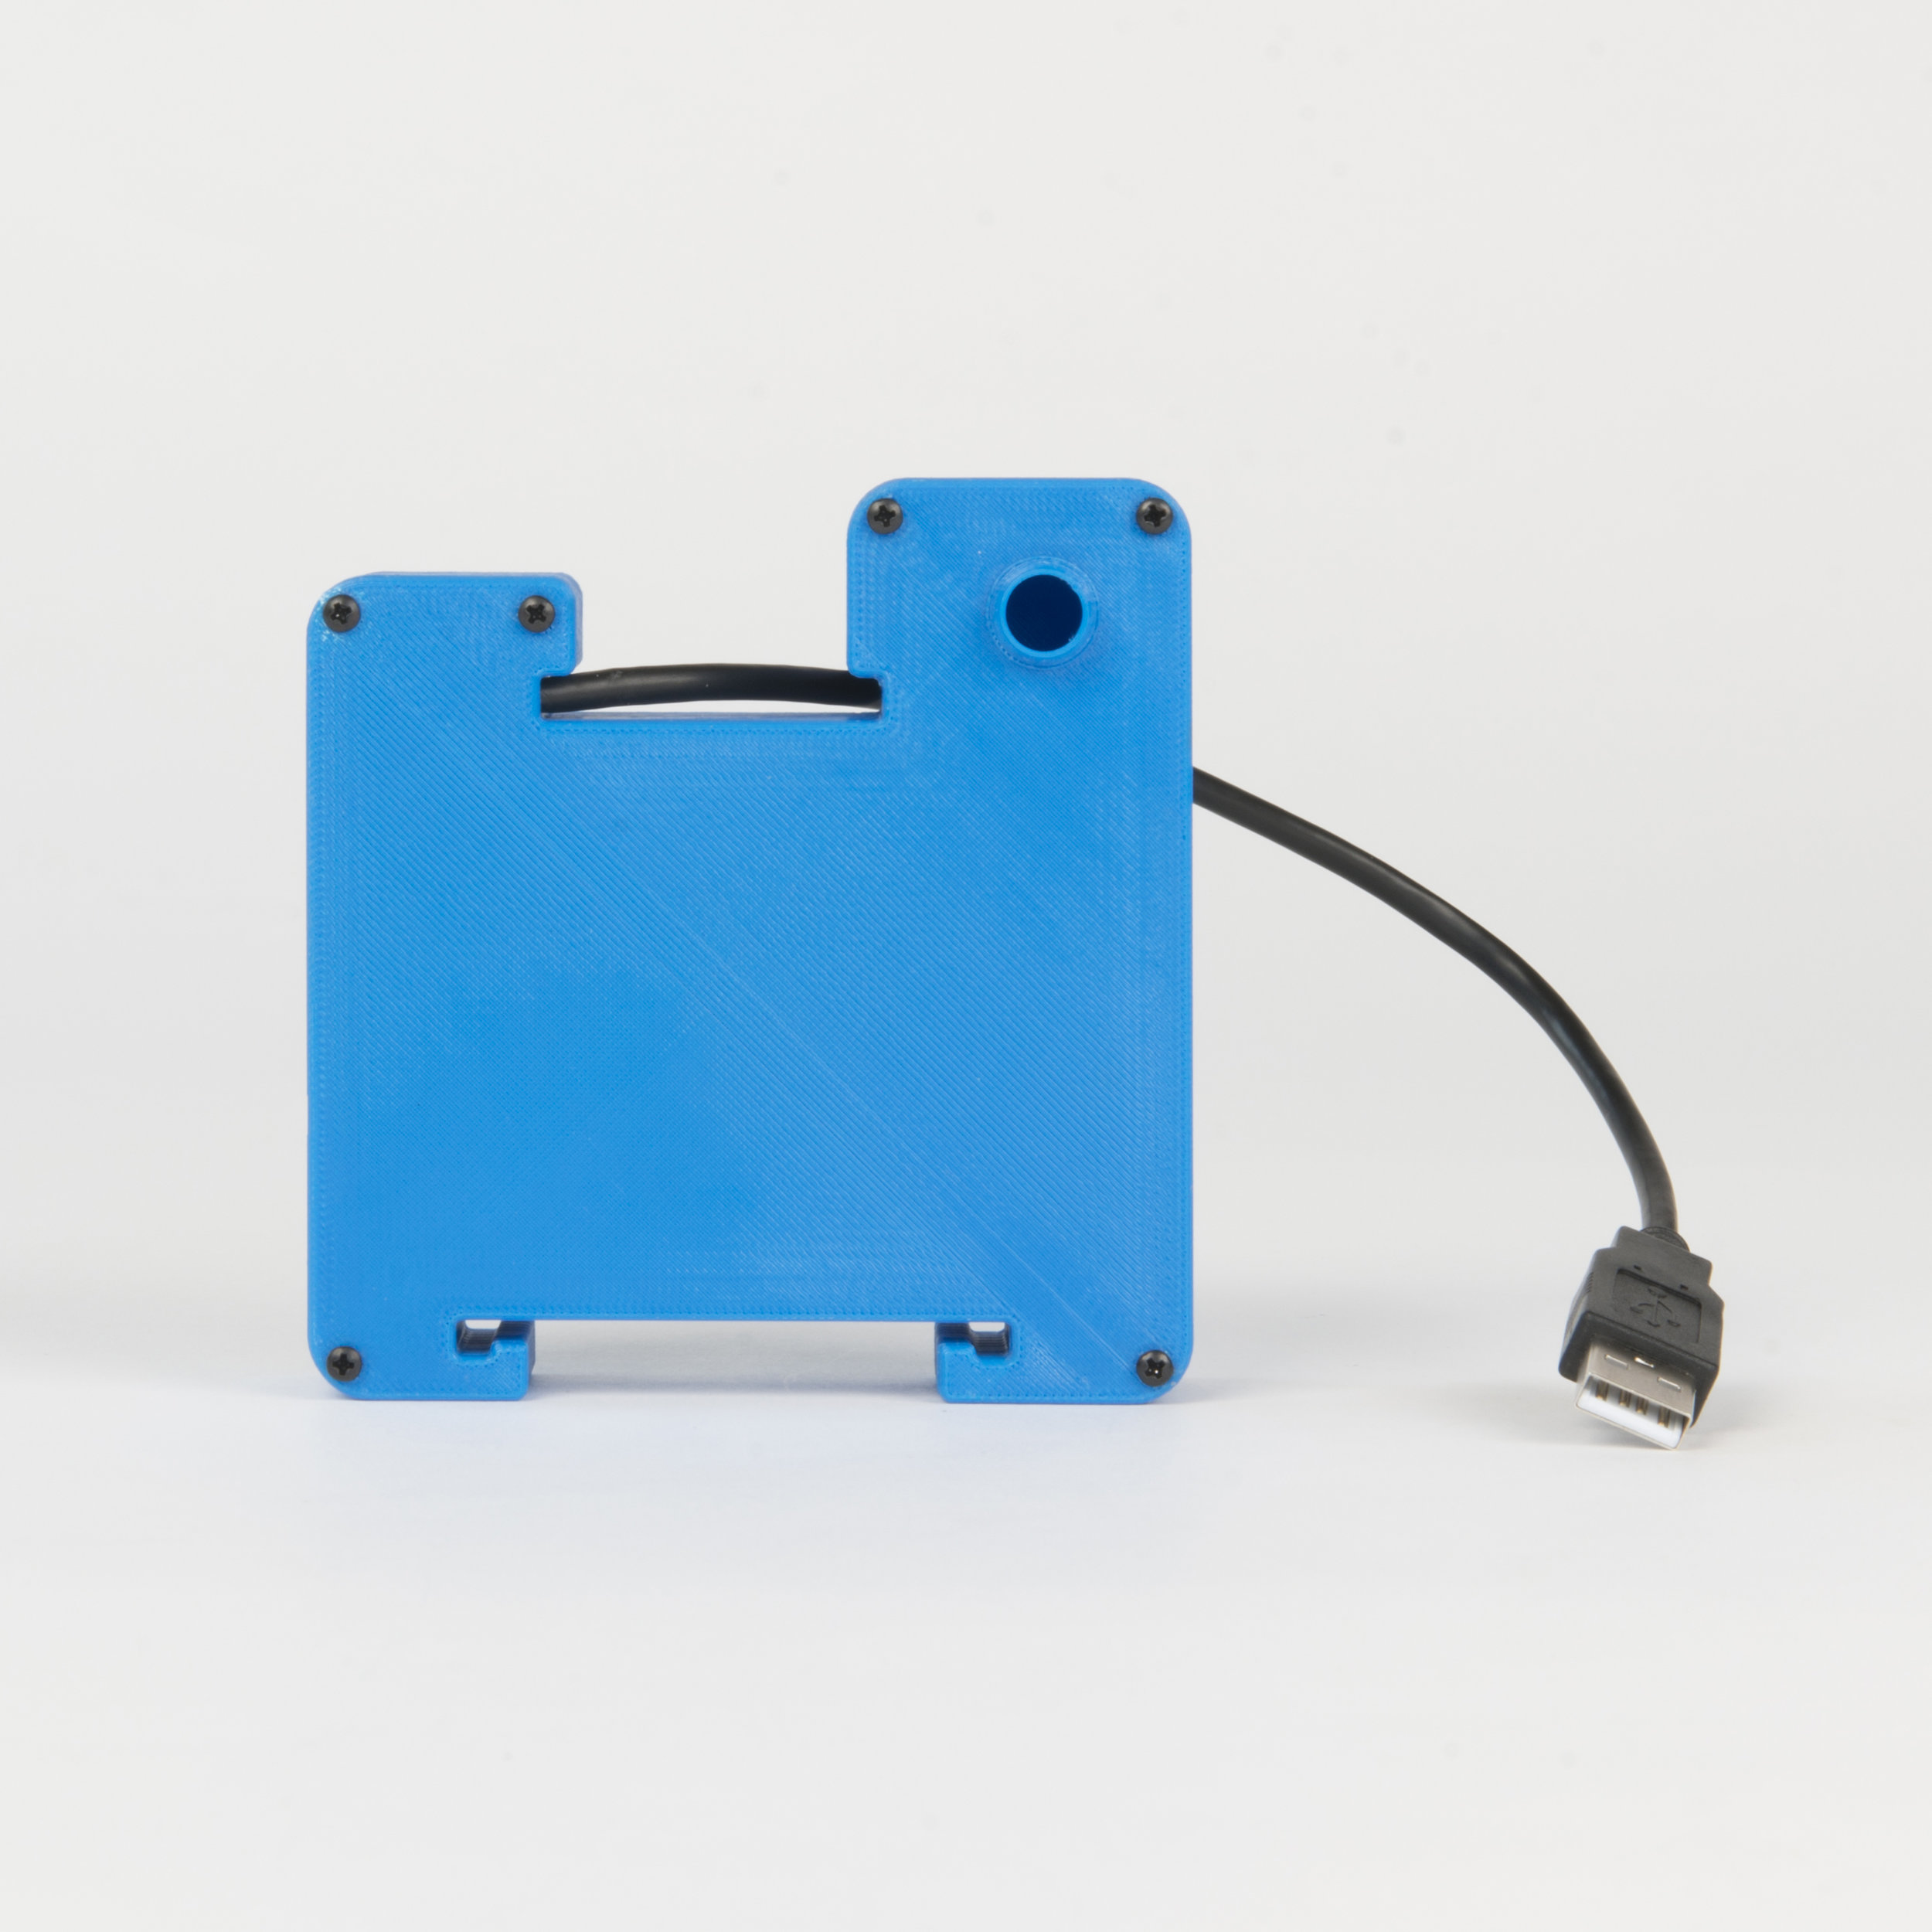 Hooked Case Camera    his housing is made from 3D printed front and rear shells. The integrated hooks are for attaching a USB battery with cable ties or elastic bands in various configurations..  more